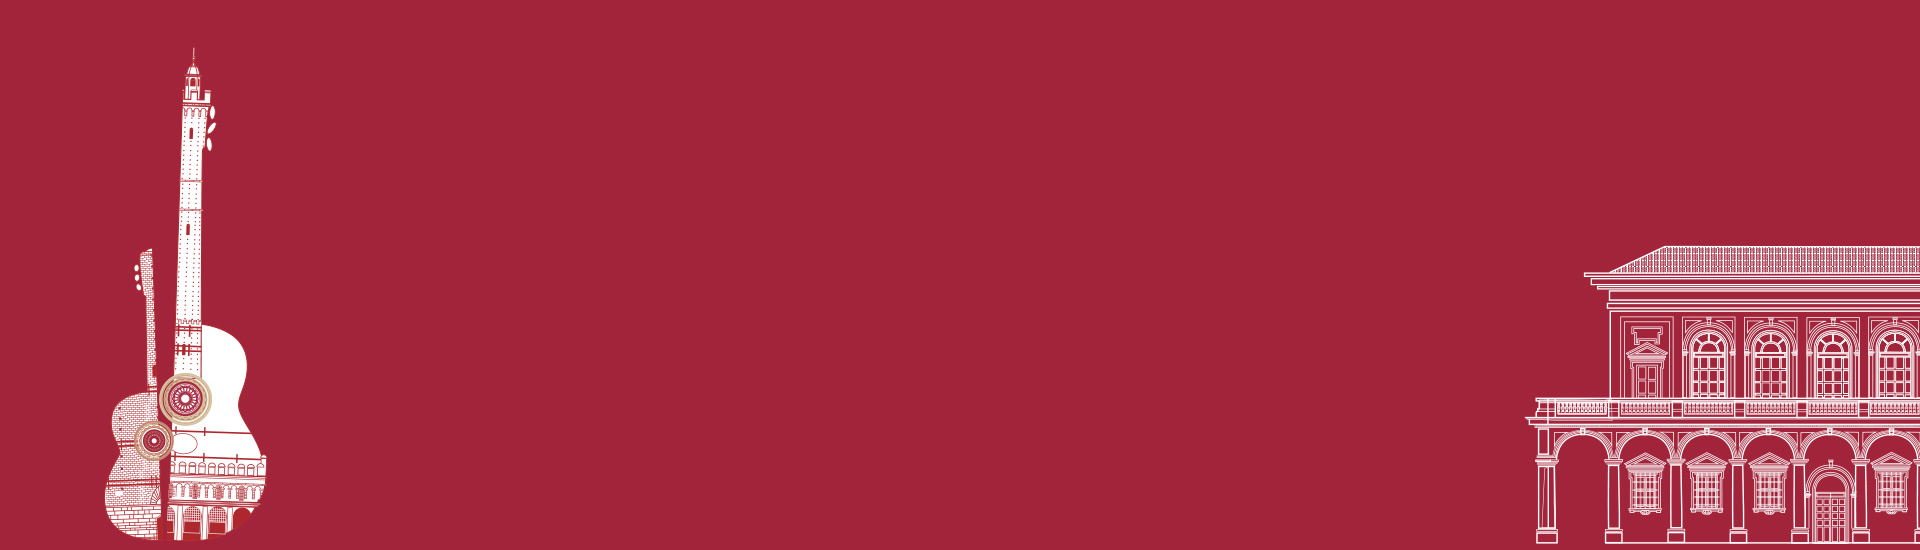 banner-rosso-2020.n